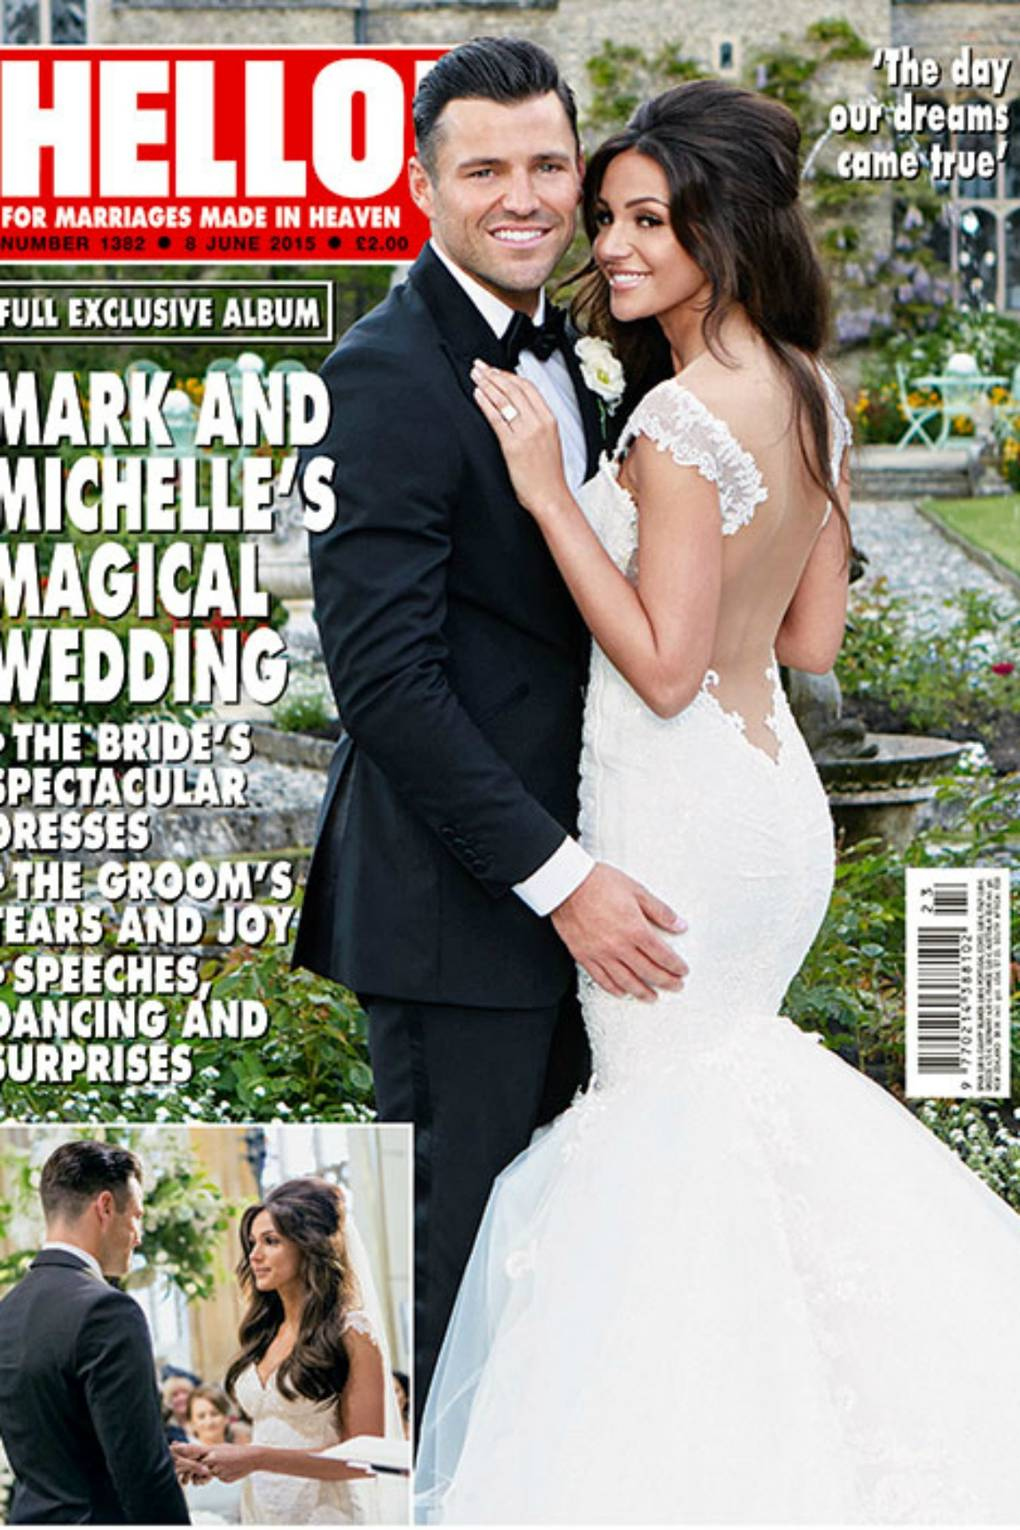 Mark Wright Michelle Keegan S Wedding Honeymoon The Dress Pictures 2017 Glamour Uk